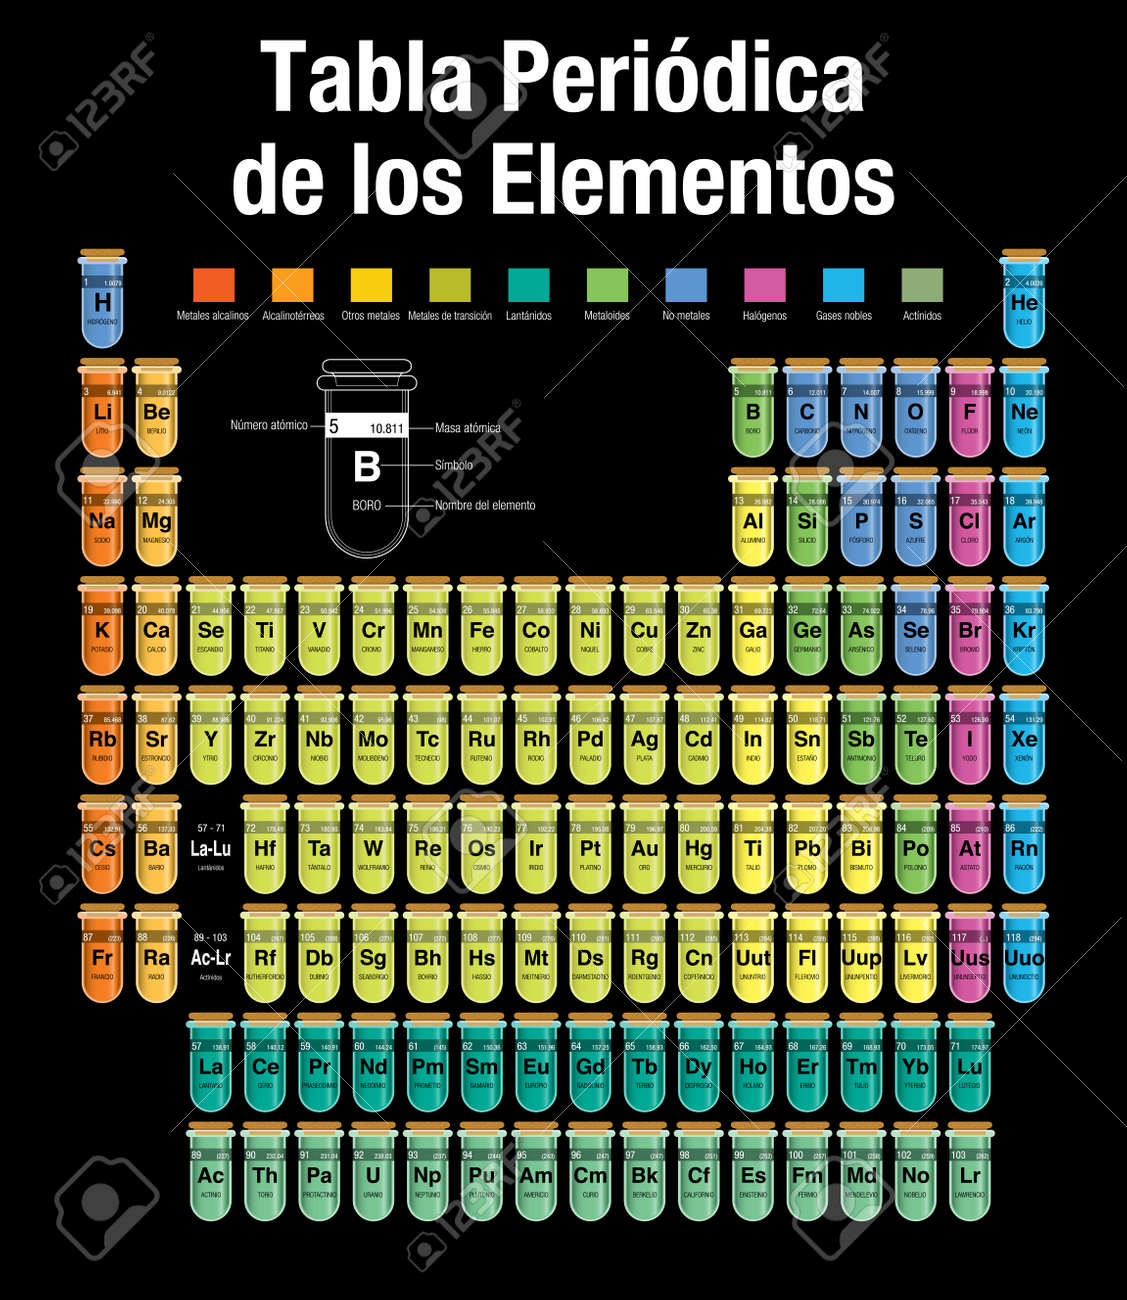 Tabla periodica de los elementos periodic table of elements tabla periodica de los elementos periodic table of elements in spanish language consisting of urtaz Gallery